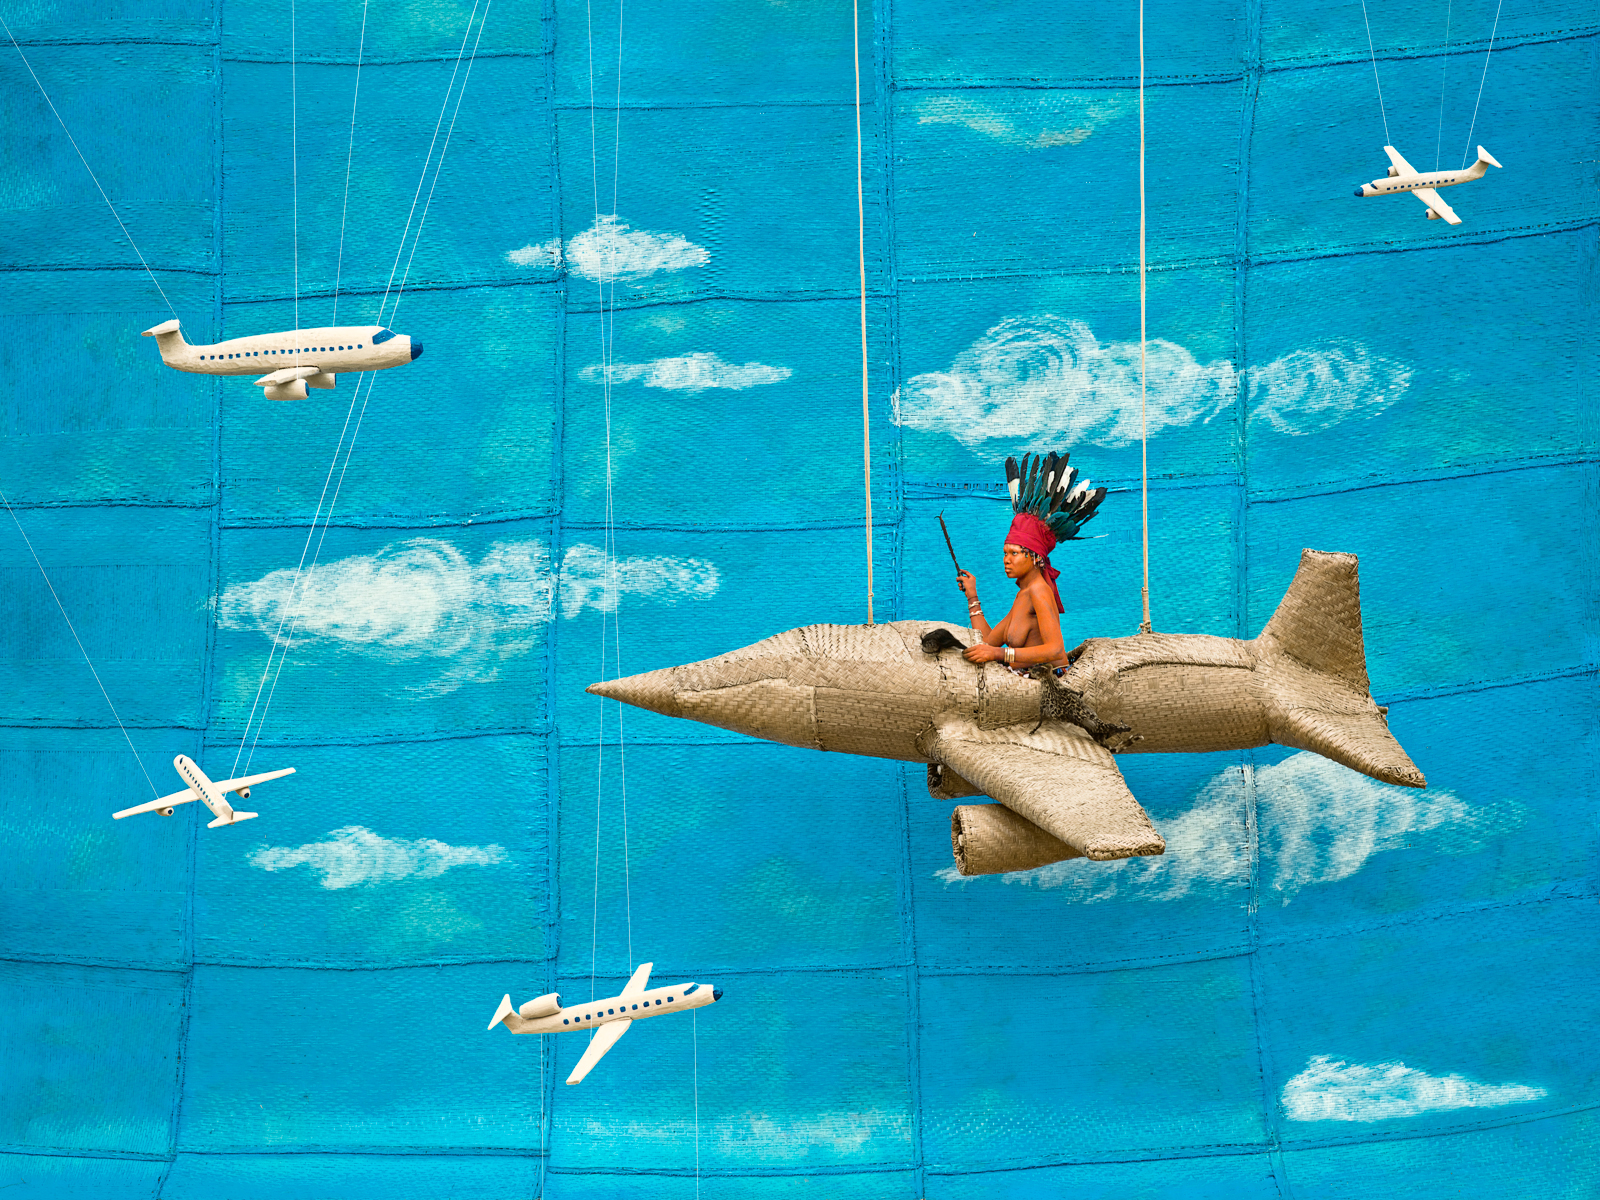 Walé Asongwaka Takes Off. From I am Walé Respect Me, 2013. By Patrick Willocq